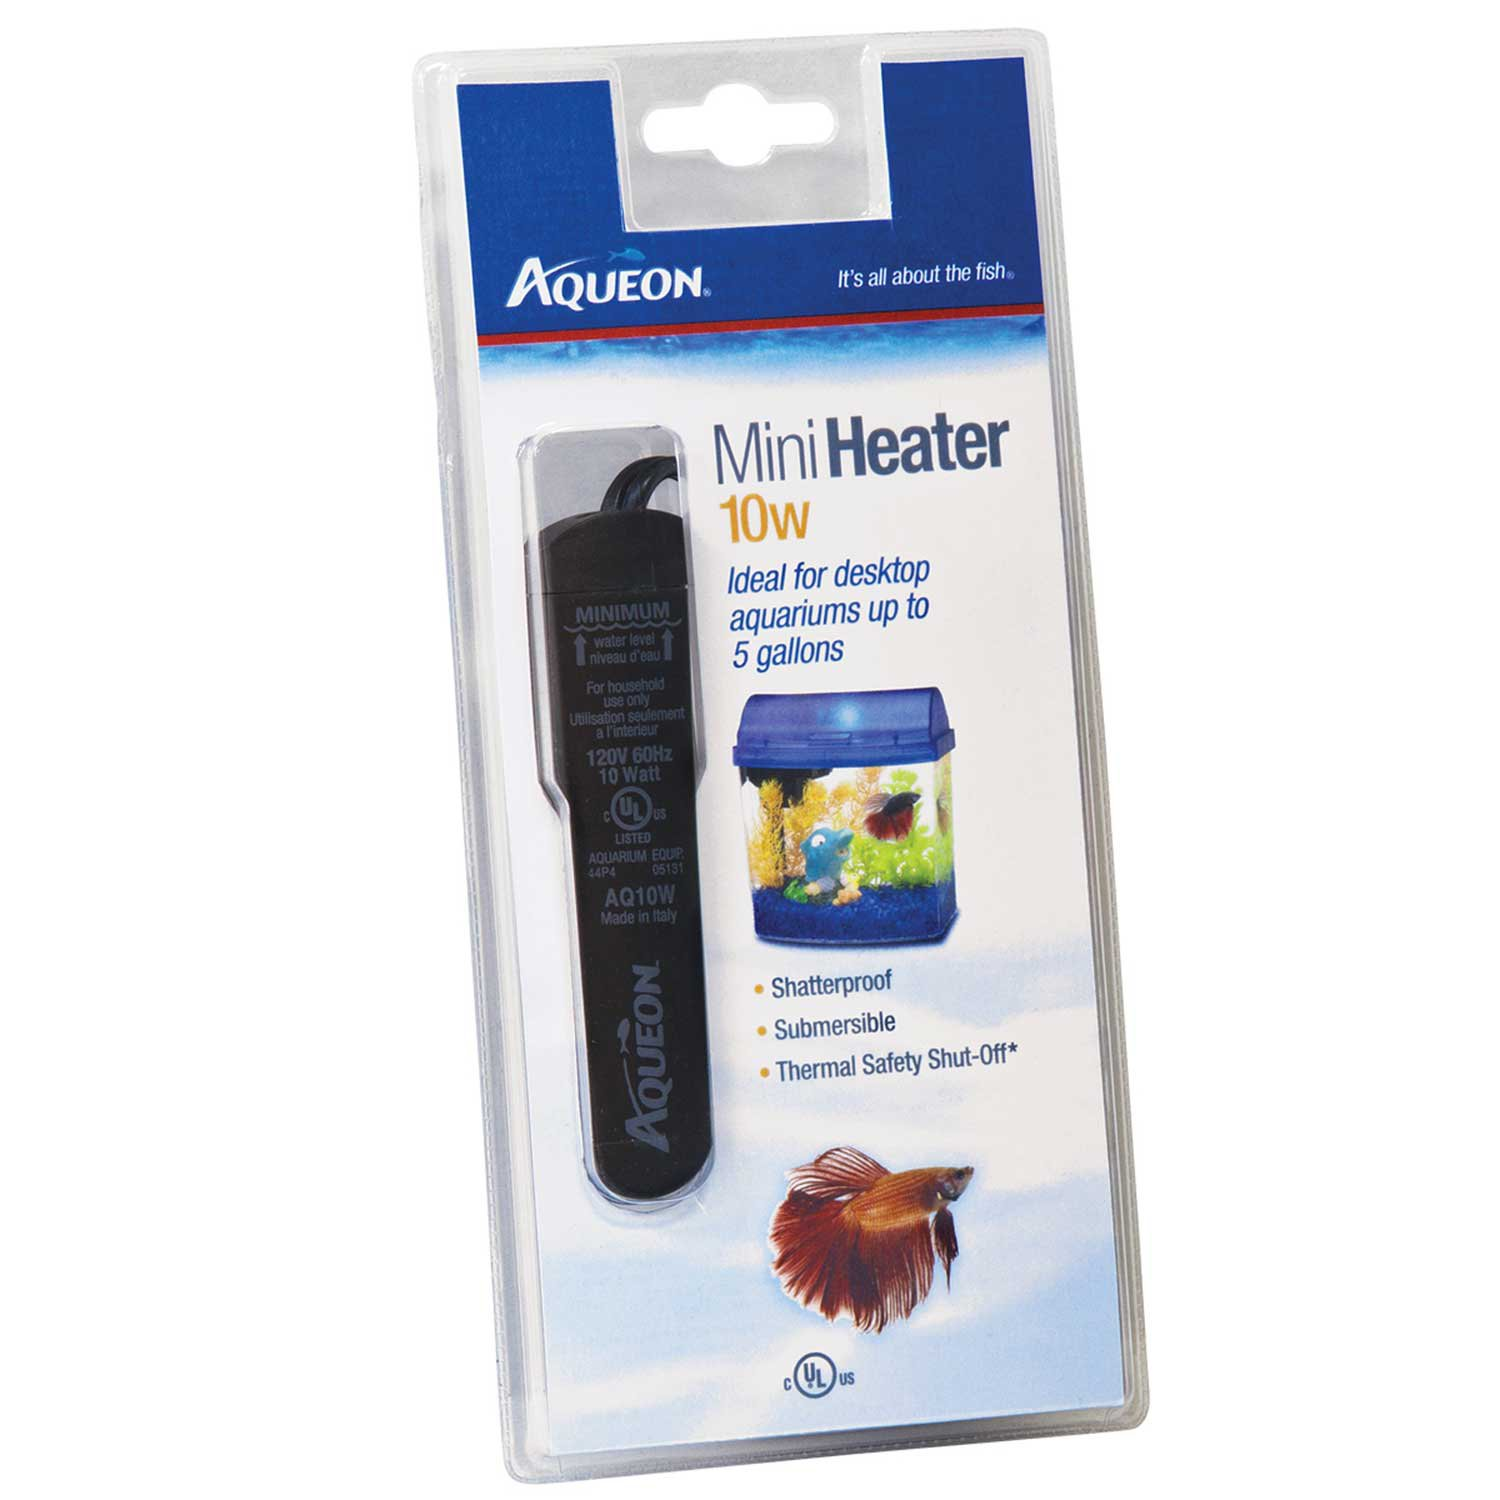 Aqueon submersible aquarium heater 10w petco for 10 gallon fish tank heater